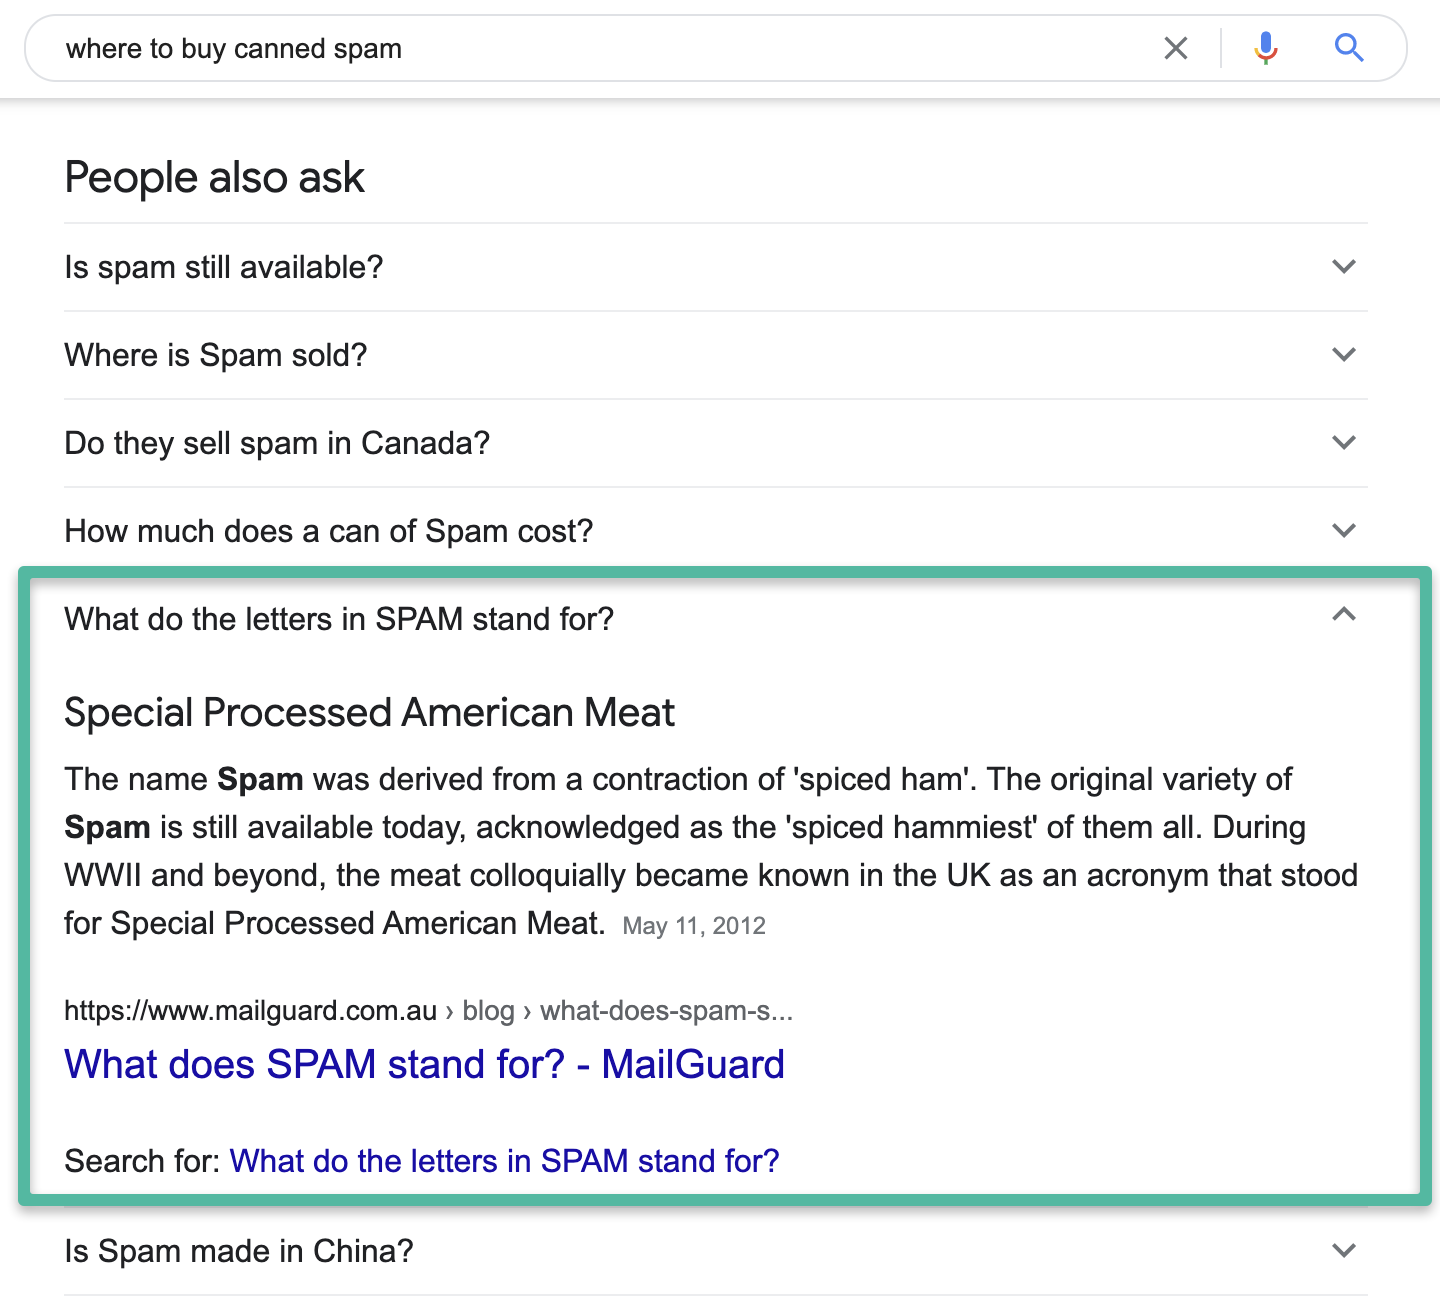 People also ask: Selecting one of the down arrows opens up more information that looks similar to a featured snippet